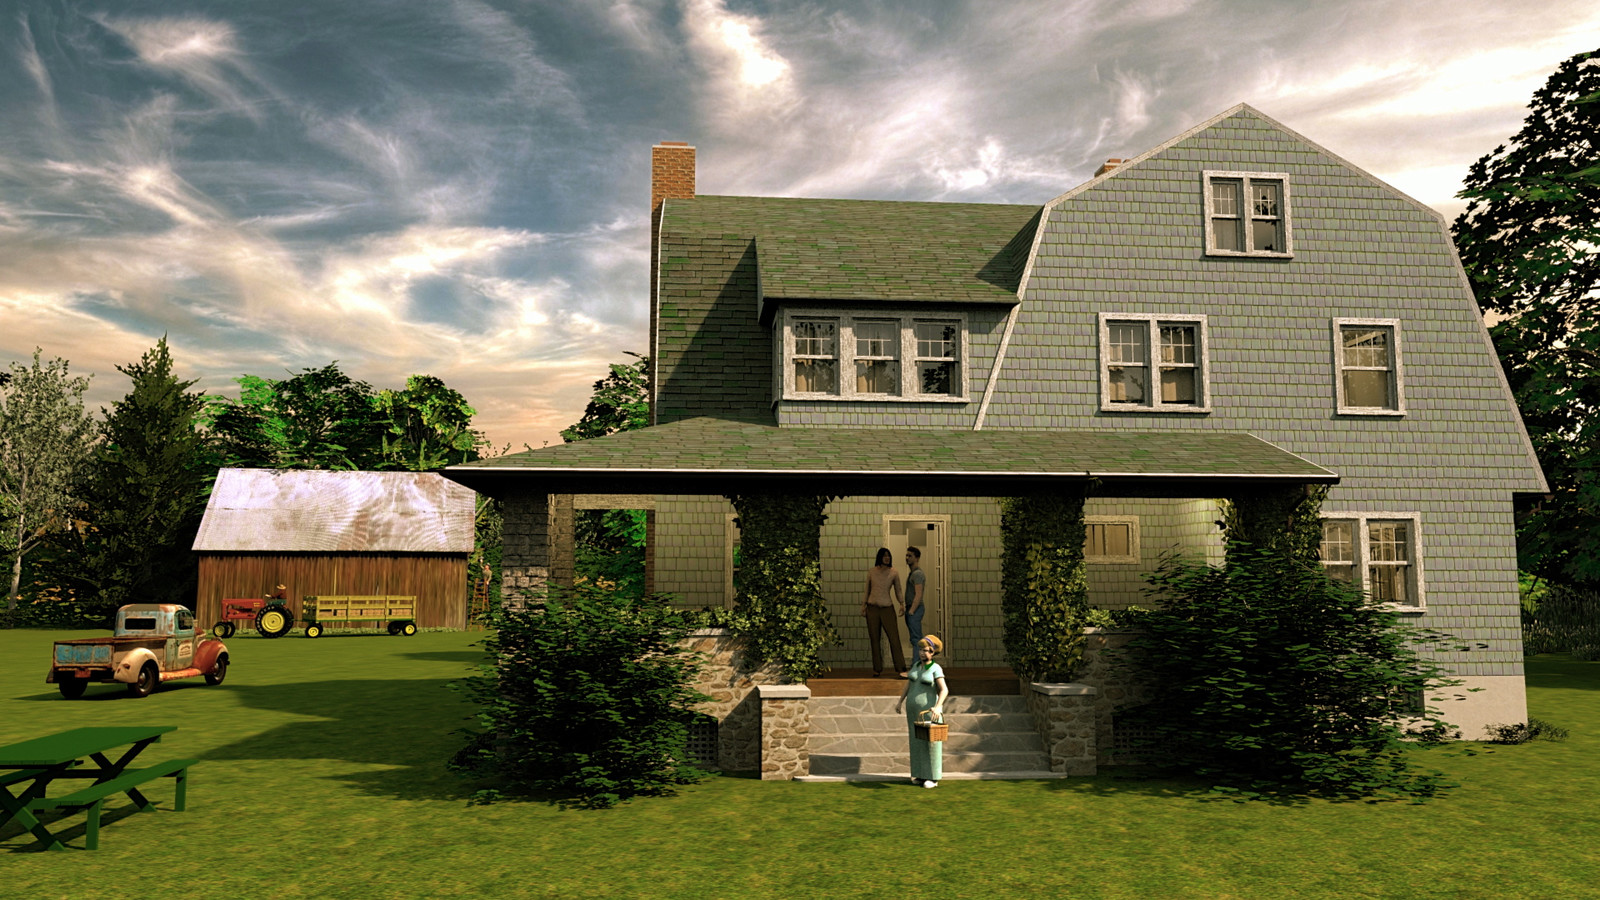 """""""Mason Farm - Home, Sweet Home"""" Summer Sun Collection  17 Masonfarm HD1080 09b - iP Kodac  """"SketchUp to LayOut"""" The Mason Farm Renders for the launching of the new book """"SketchUp to LayOut"""" http://bit.ly/2j0d0Wh by MasterSketchup."""